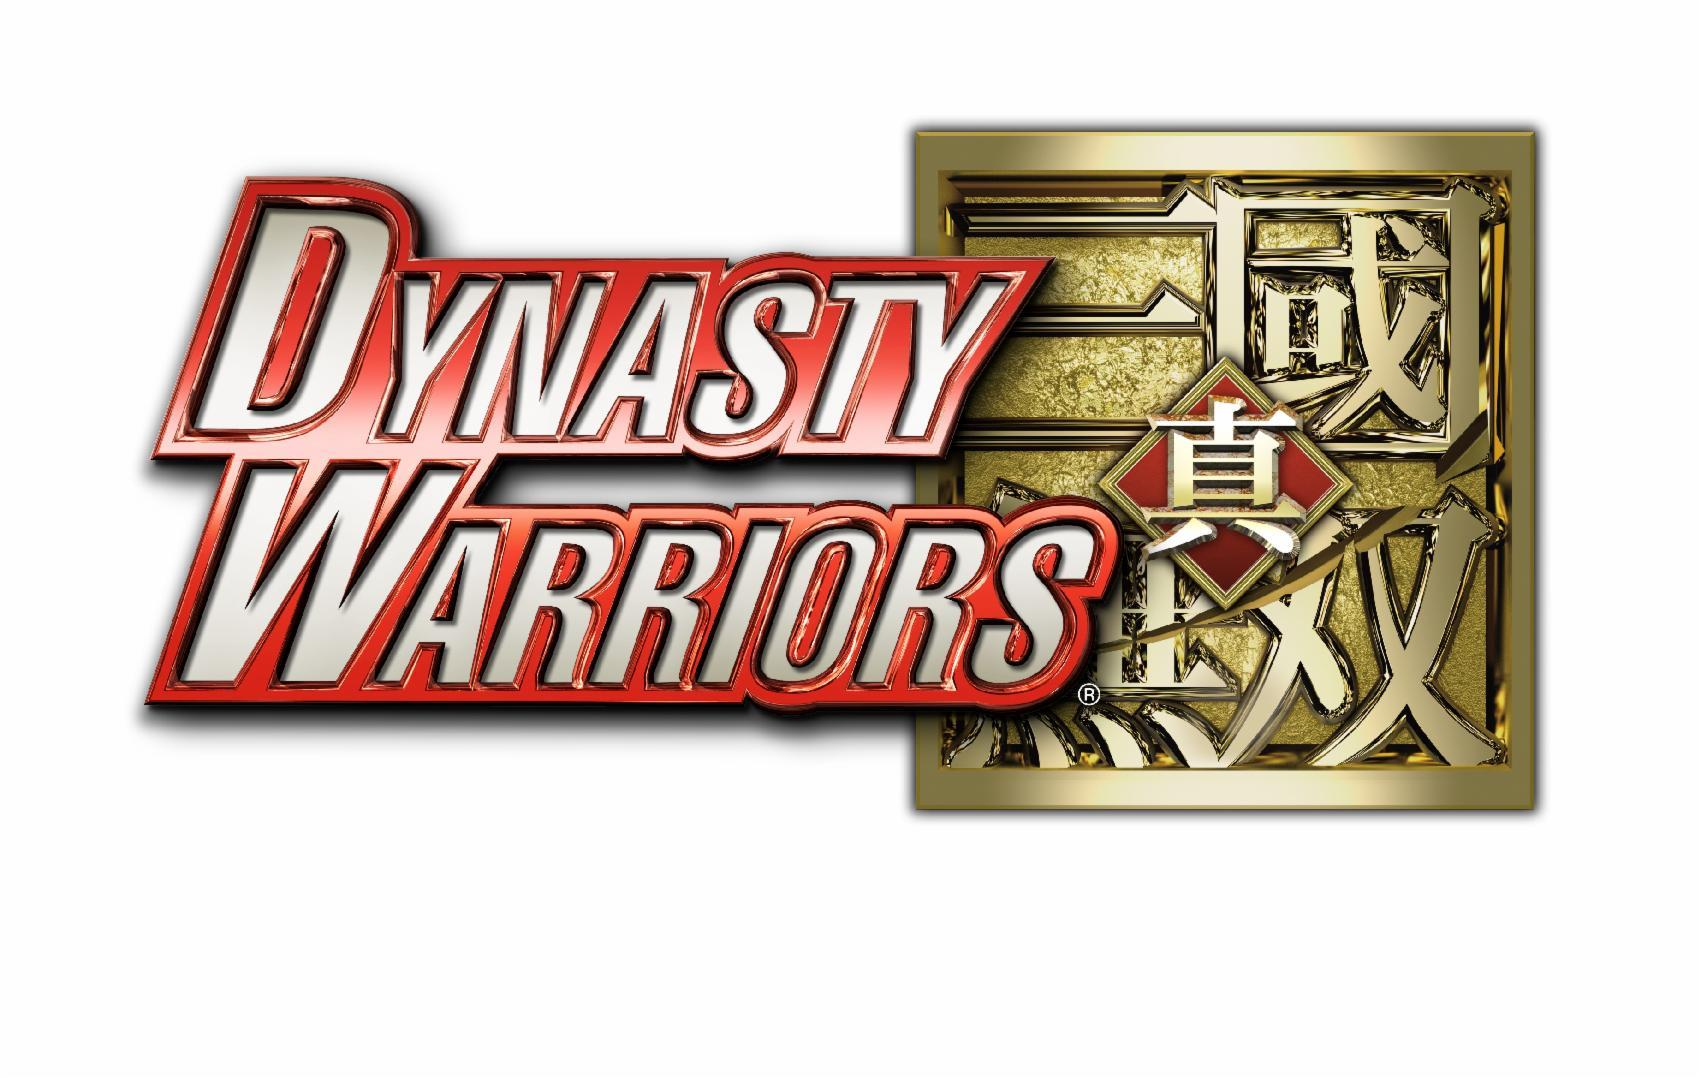 are you big fan of Dynasty warriors ?